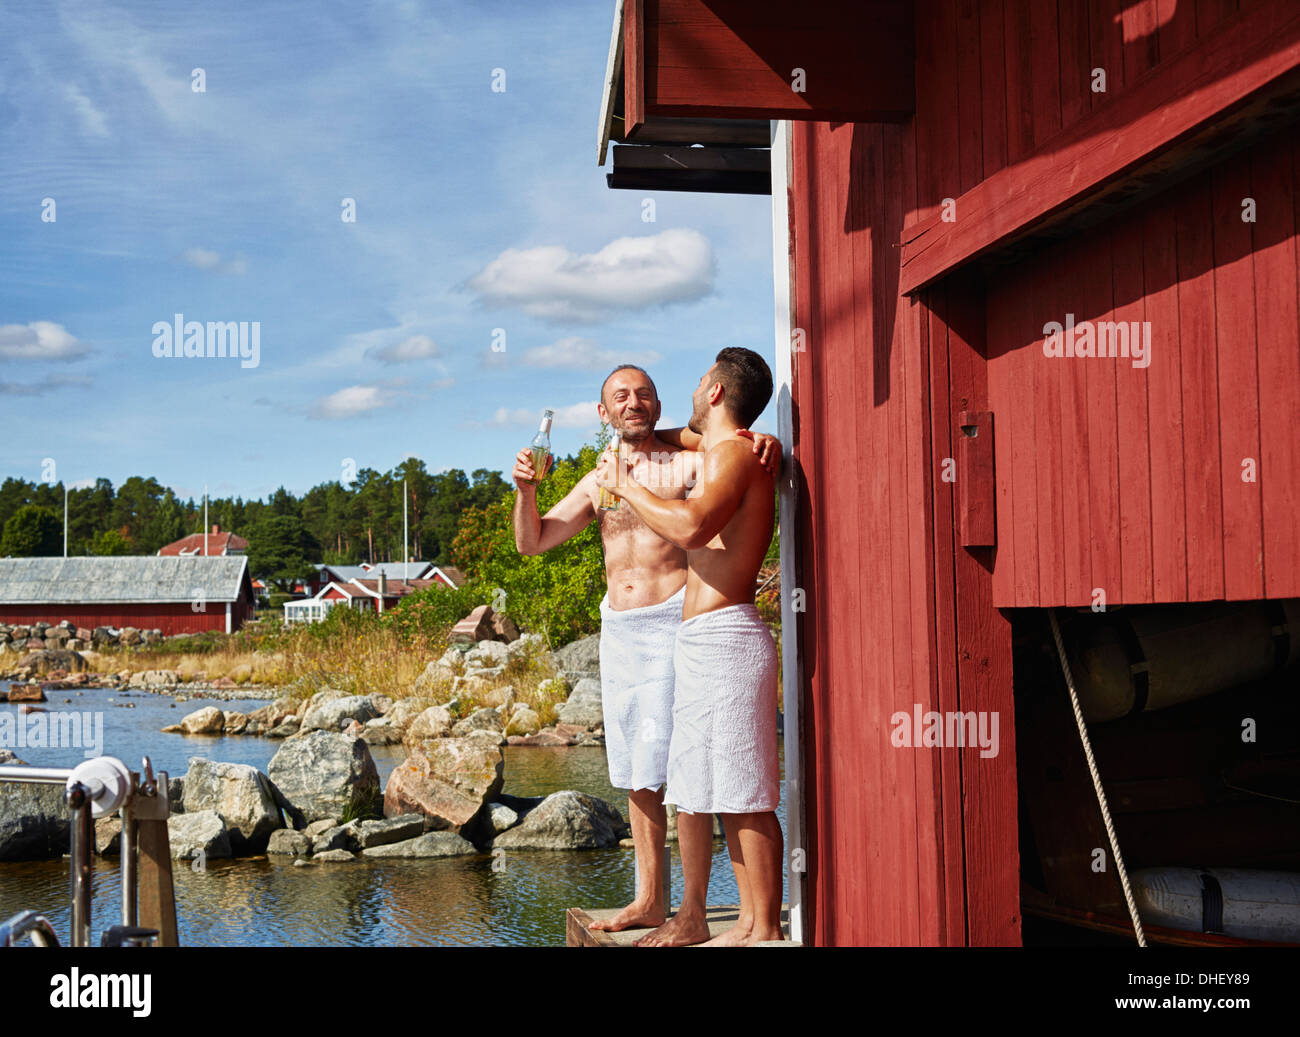 Two men with beers outside sauna - Stock Image